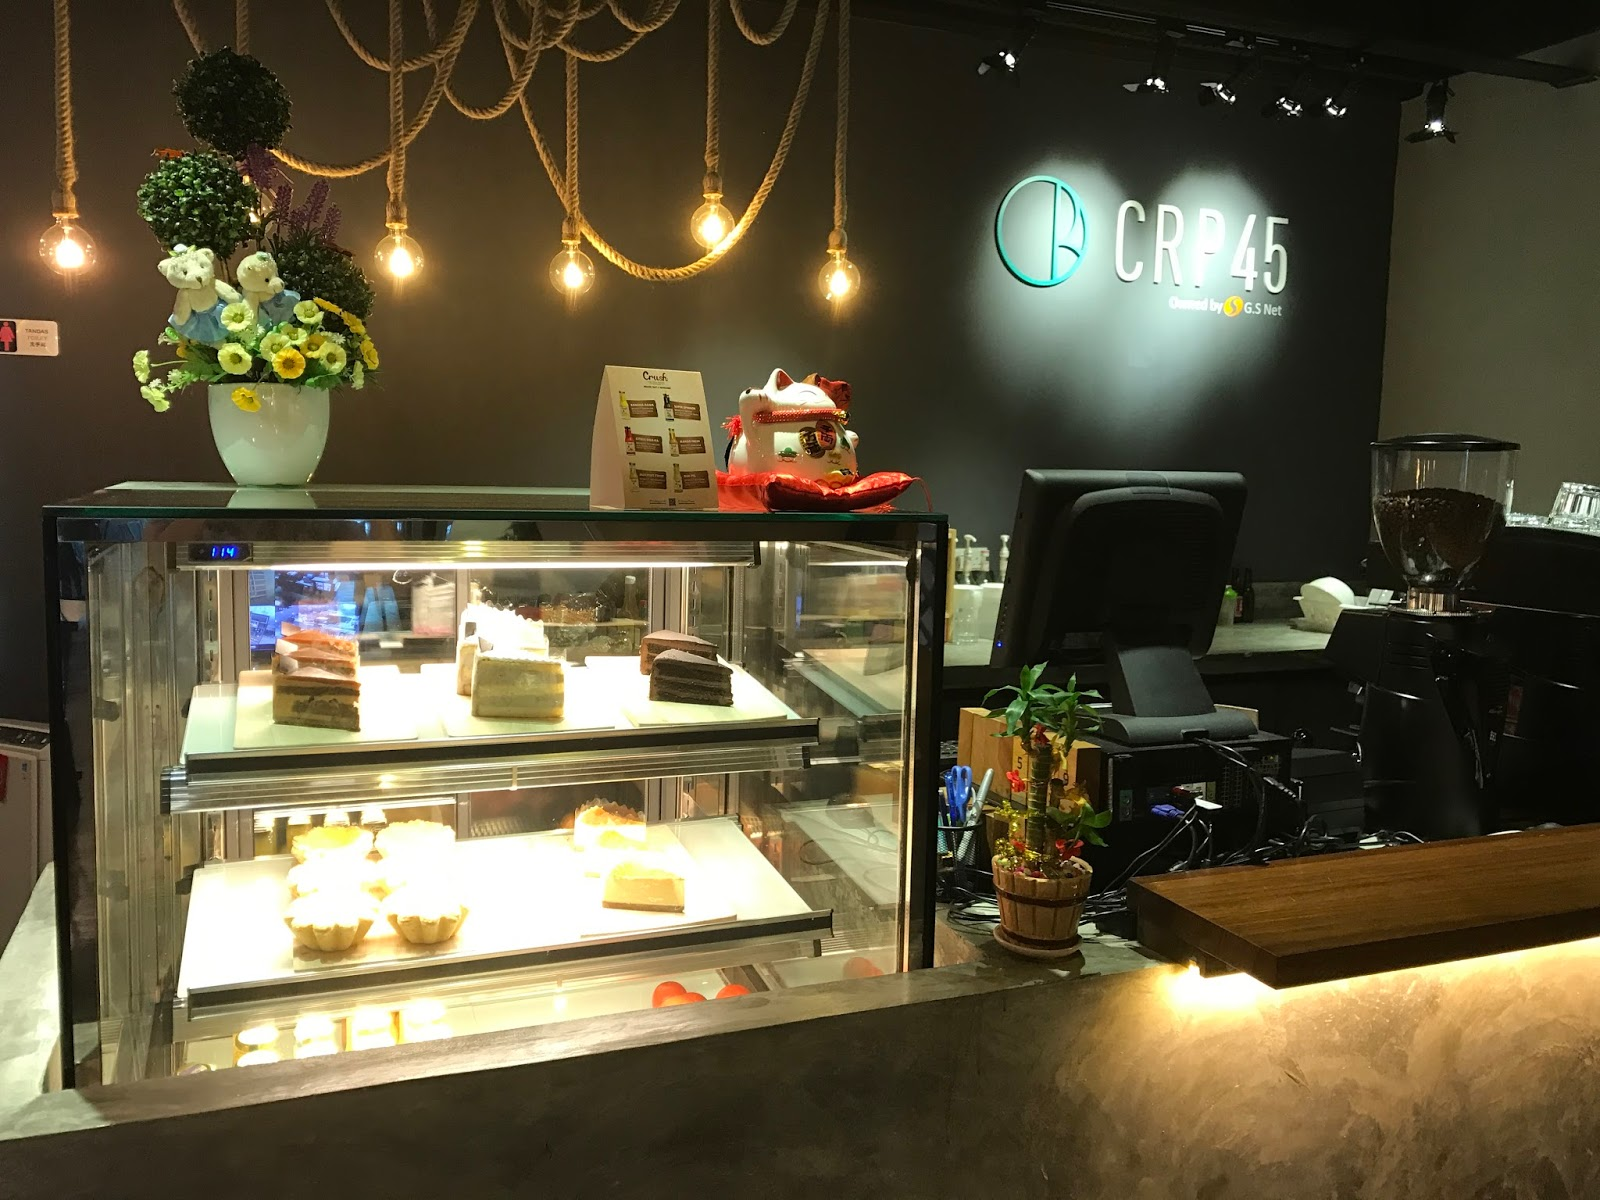 [Food review] More than just great coffee and food at CRP 45 Wellness & Cafe @ Sri Petaling.